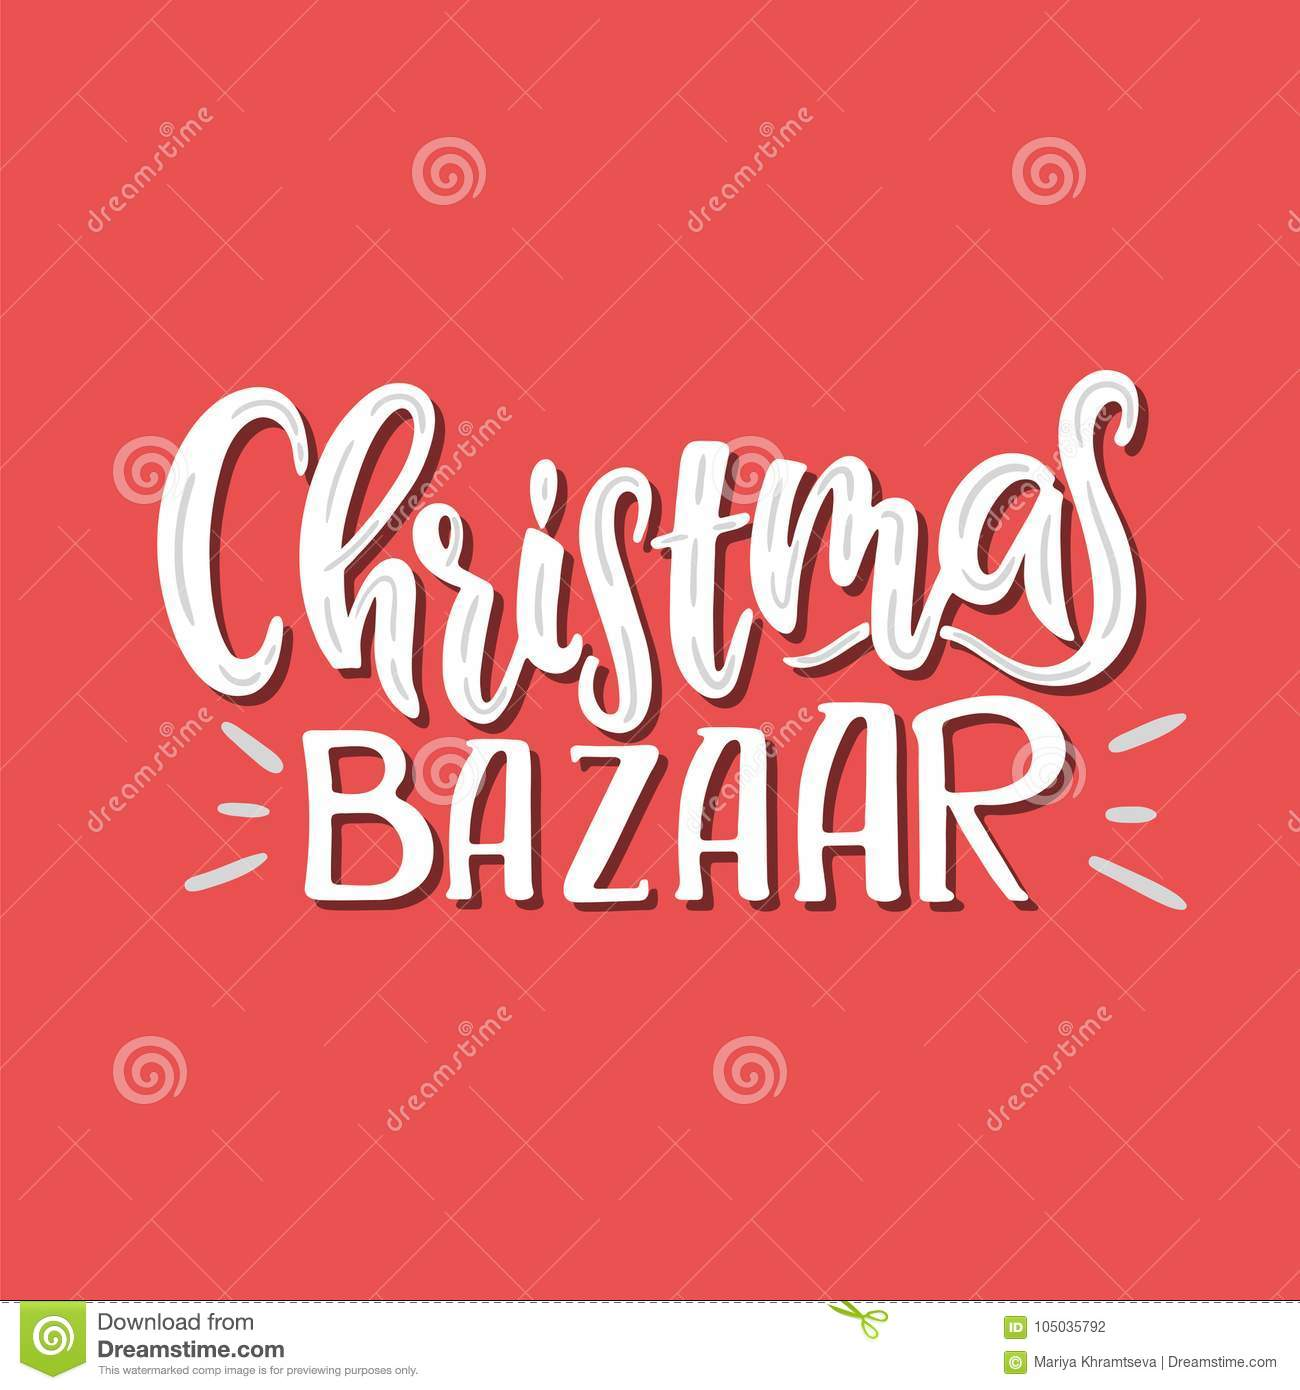 Vector christmas bazaar